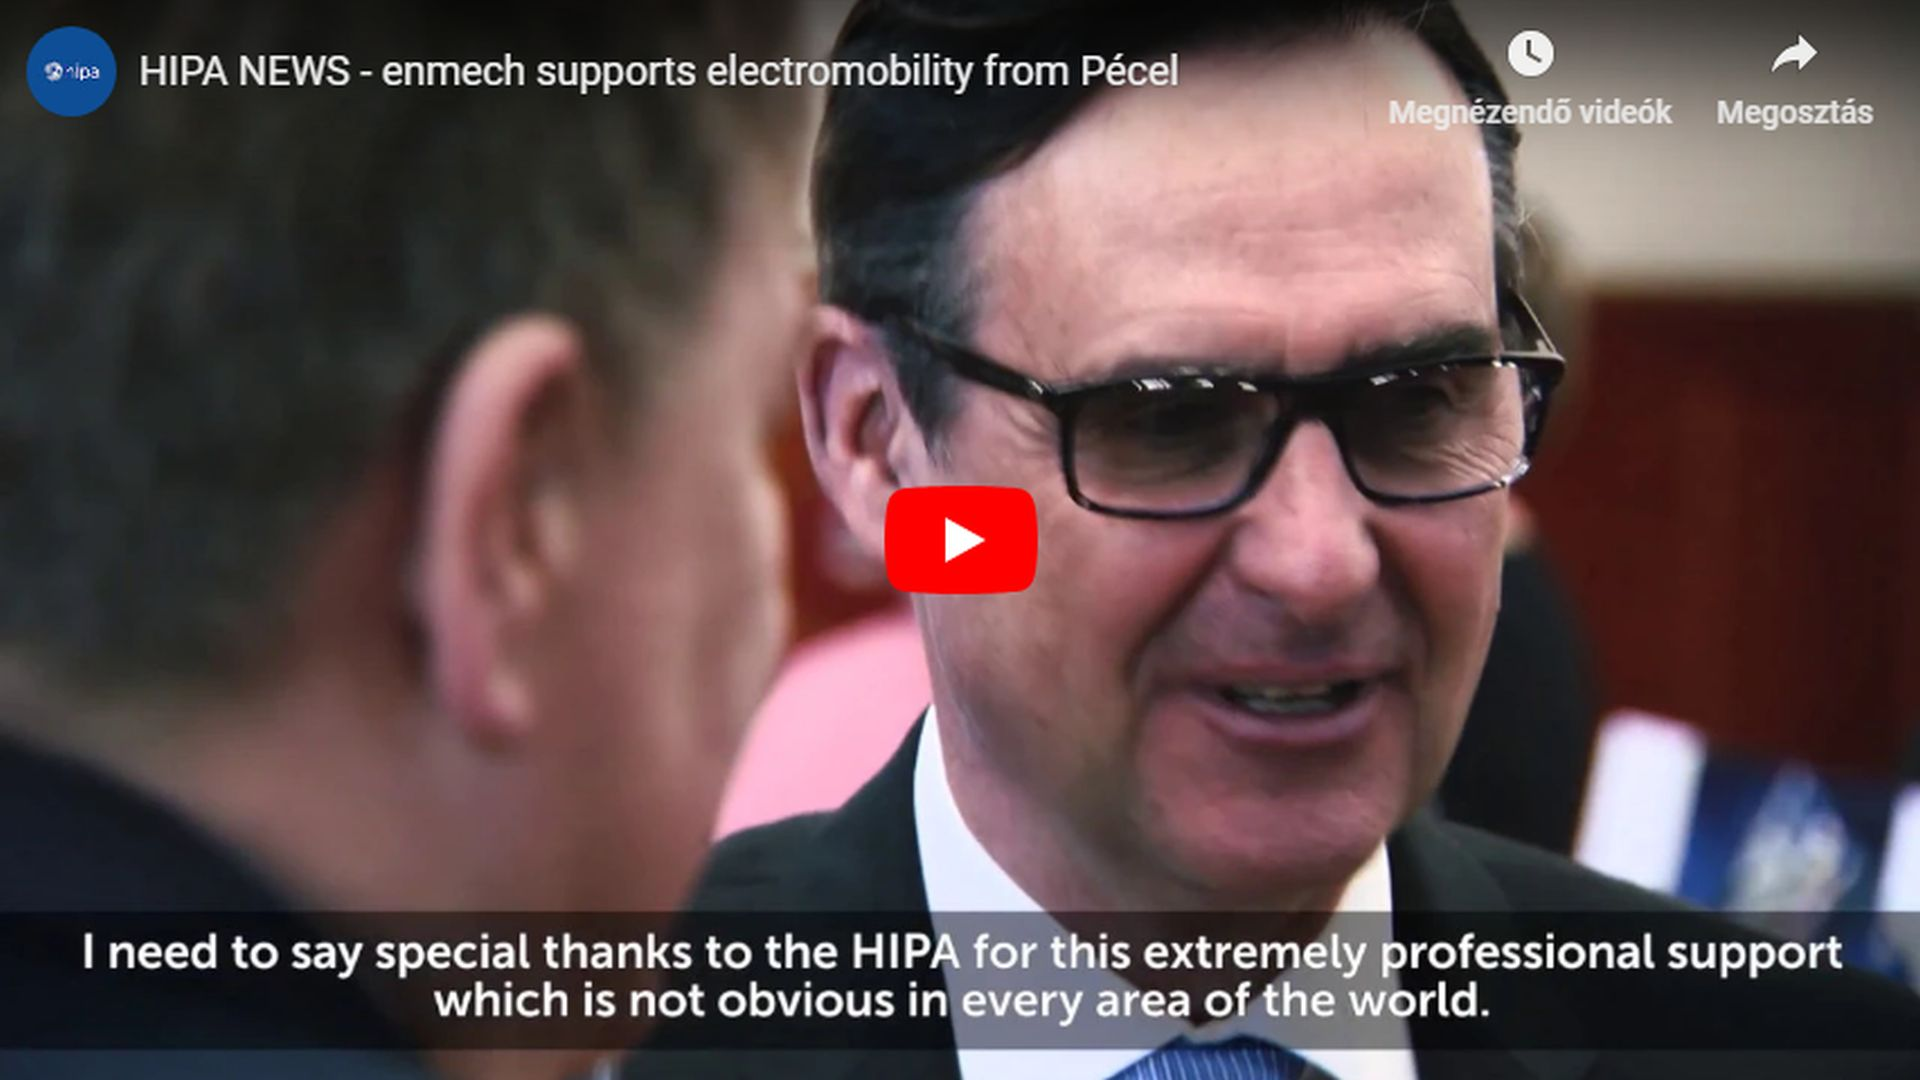 With its latest development also enmech embarks on the path of e-mobility - VIDEO REPORT